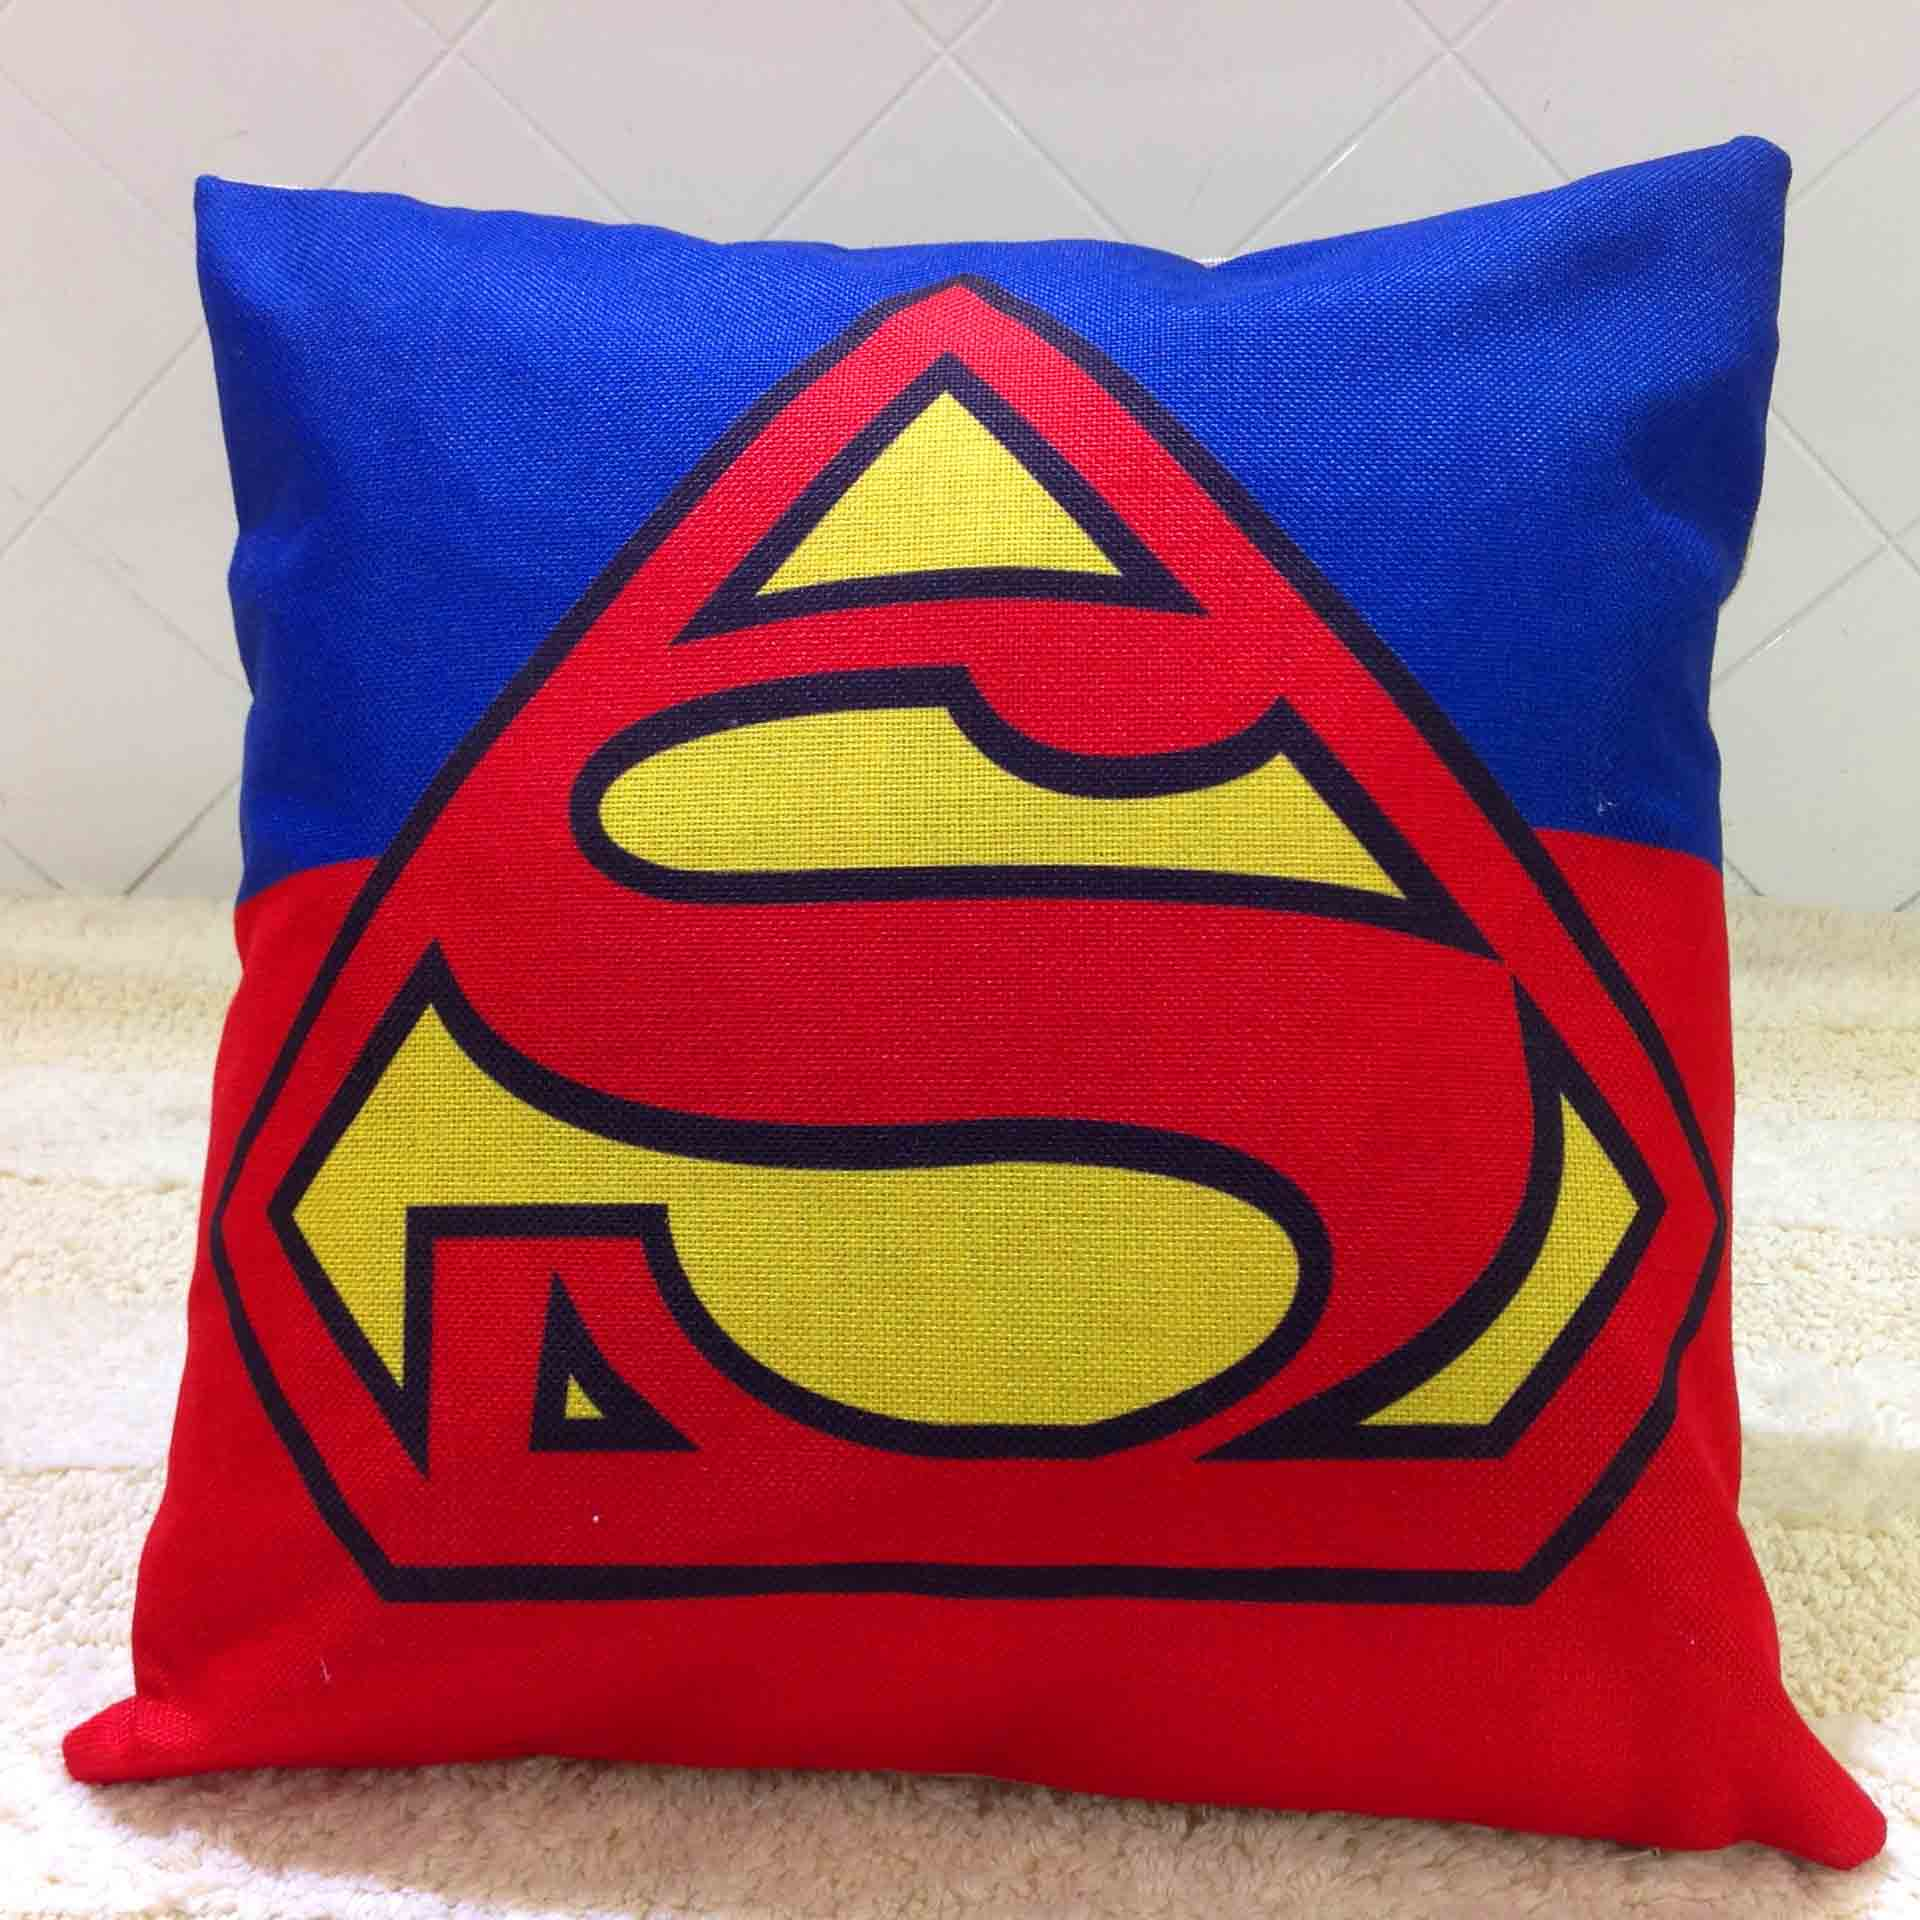 chair cover express hawaii recovering patio cushions fedex cool cartoon pillowcase soft cotton andlinen back